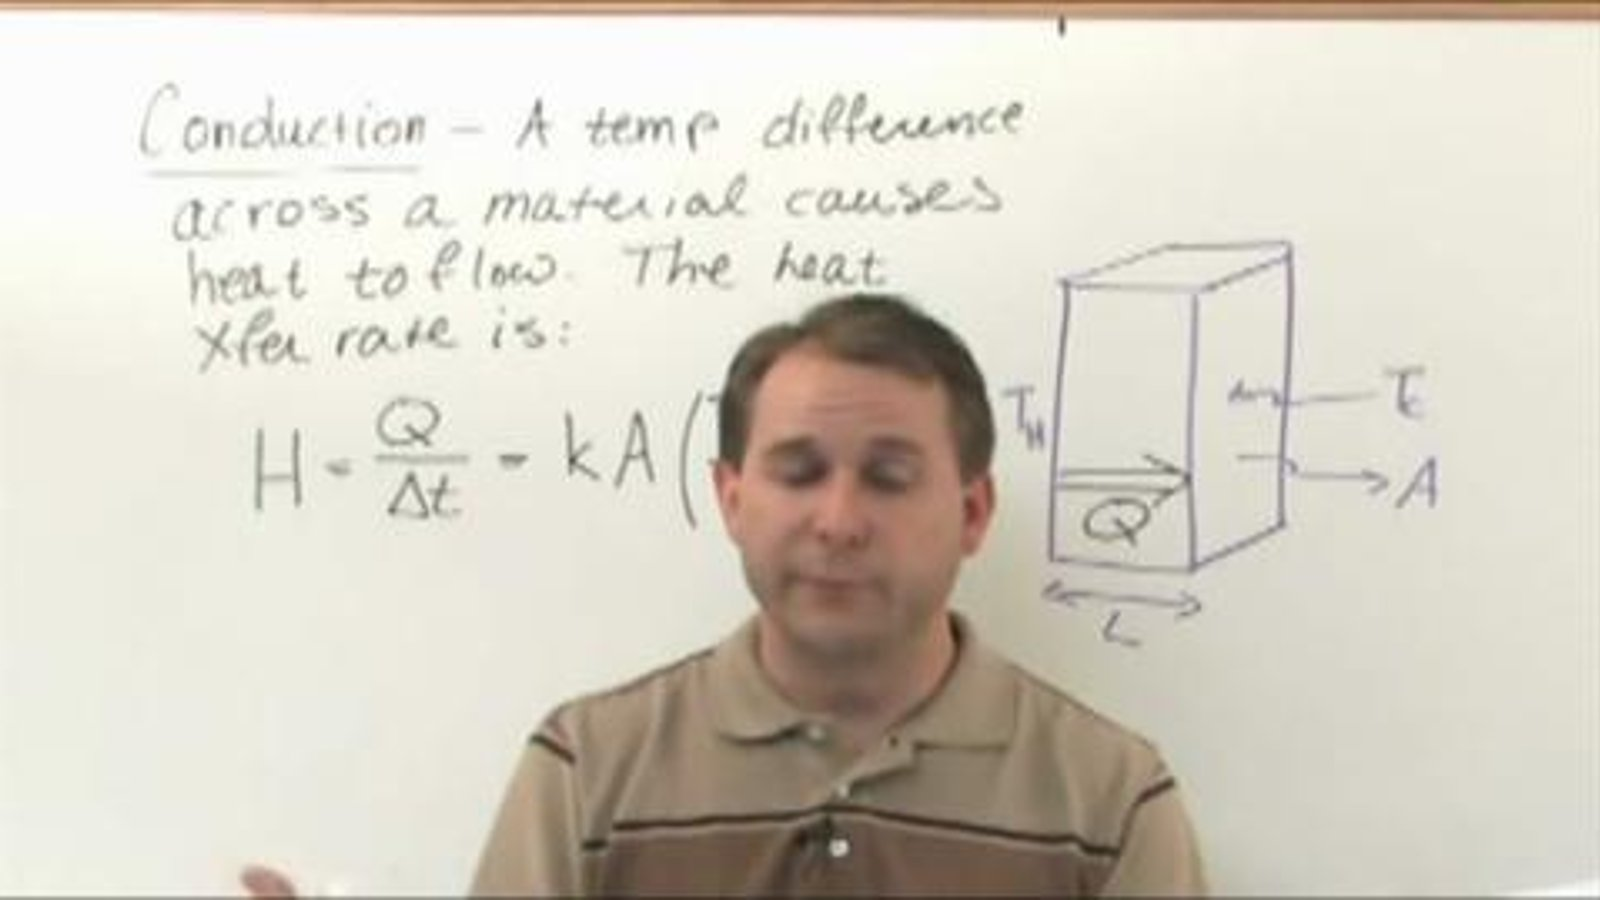 Heat Transfer by Convection, Radiation & Conduction